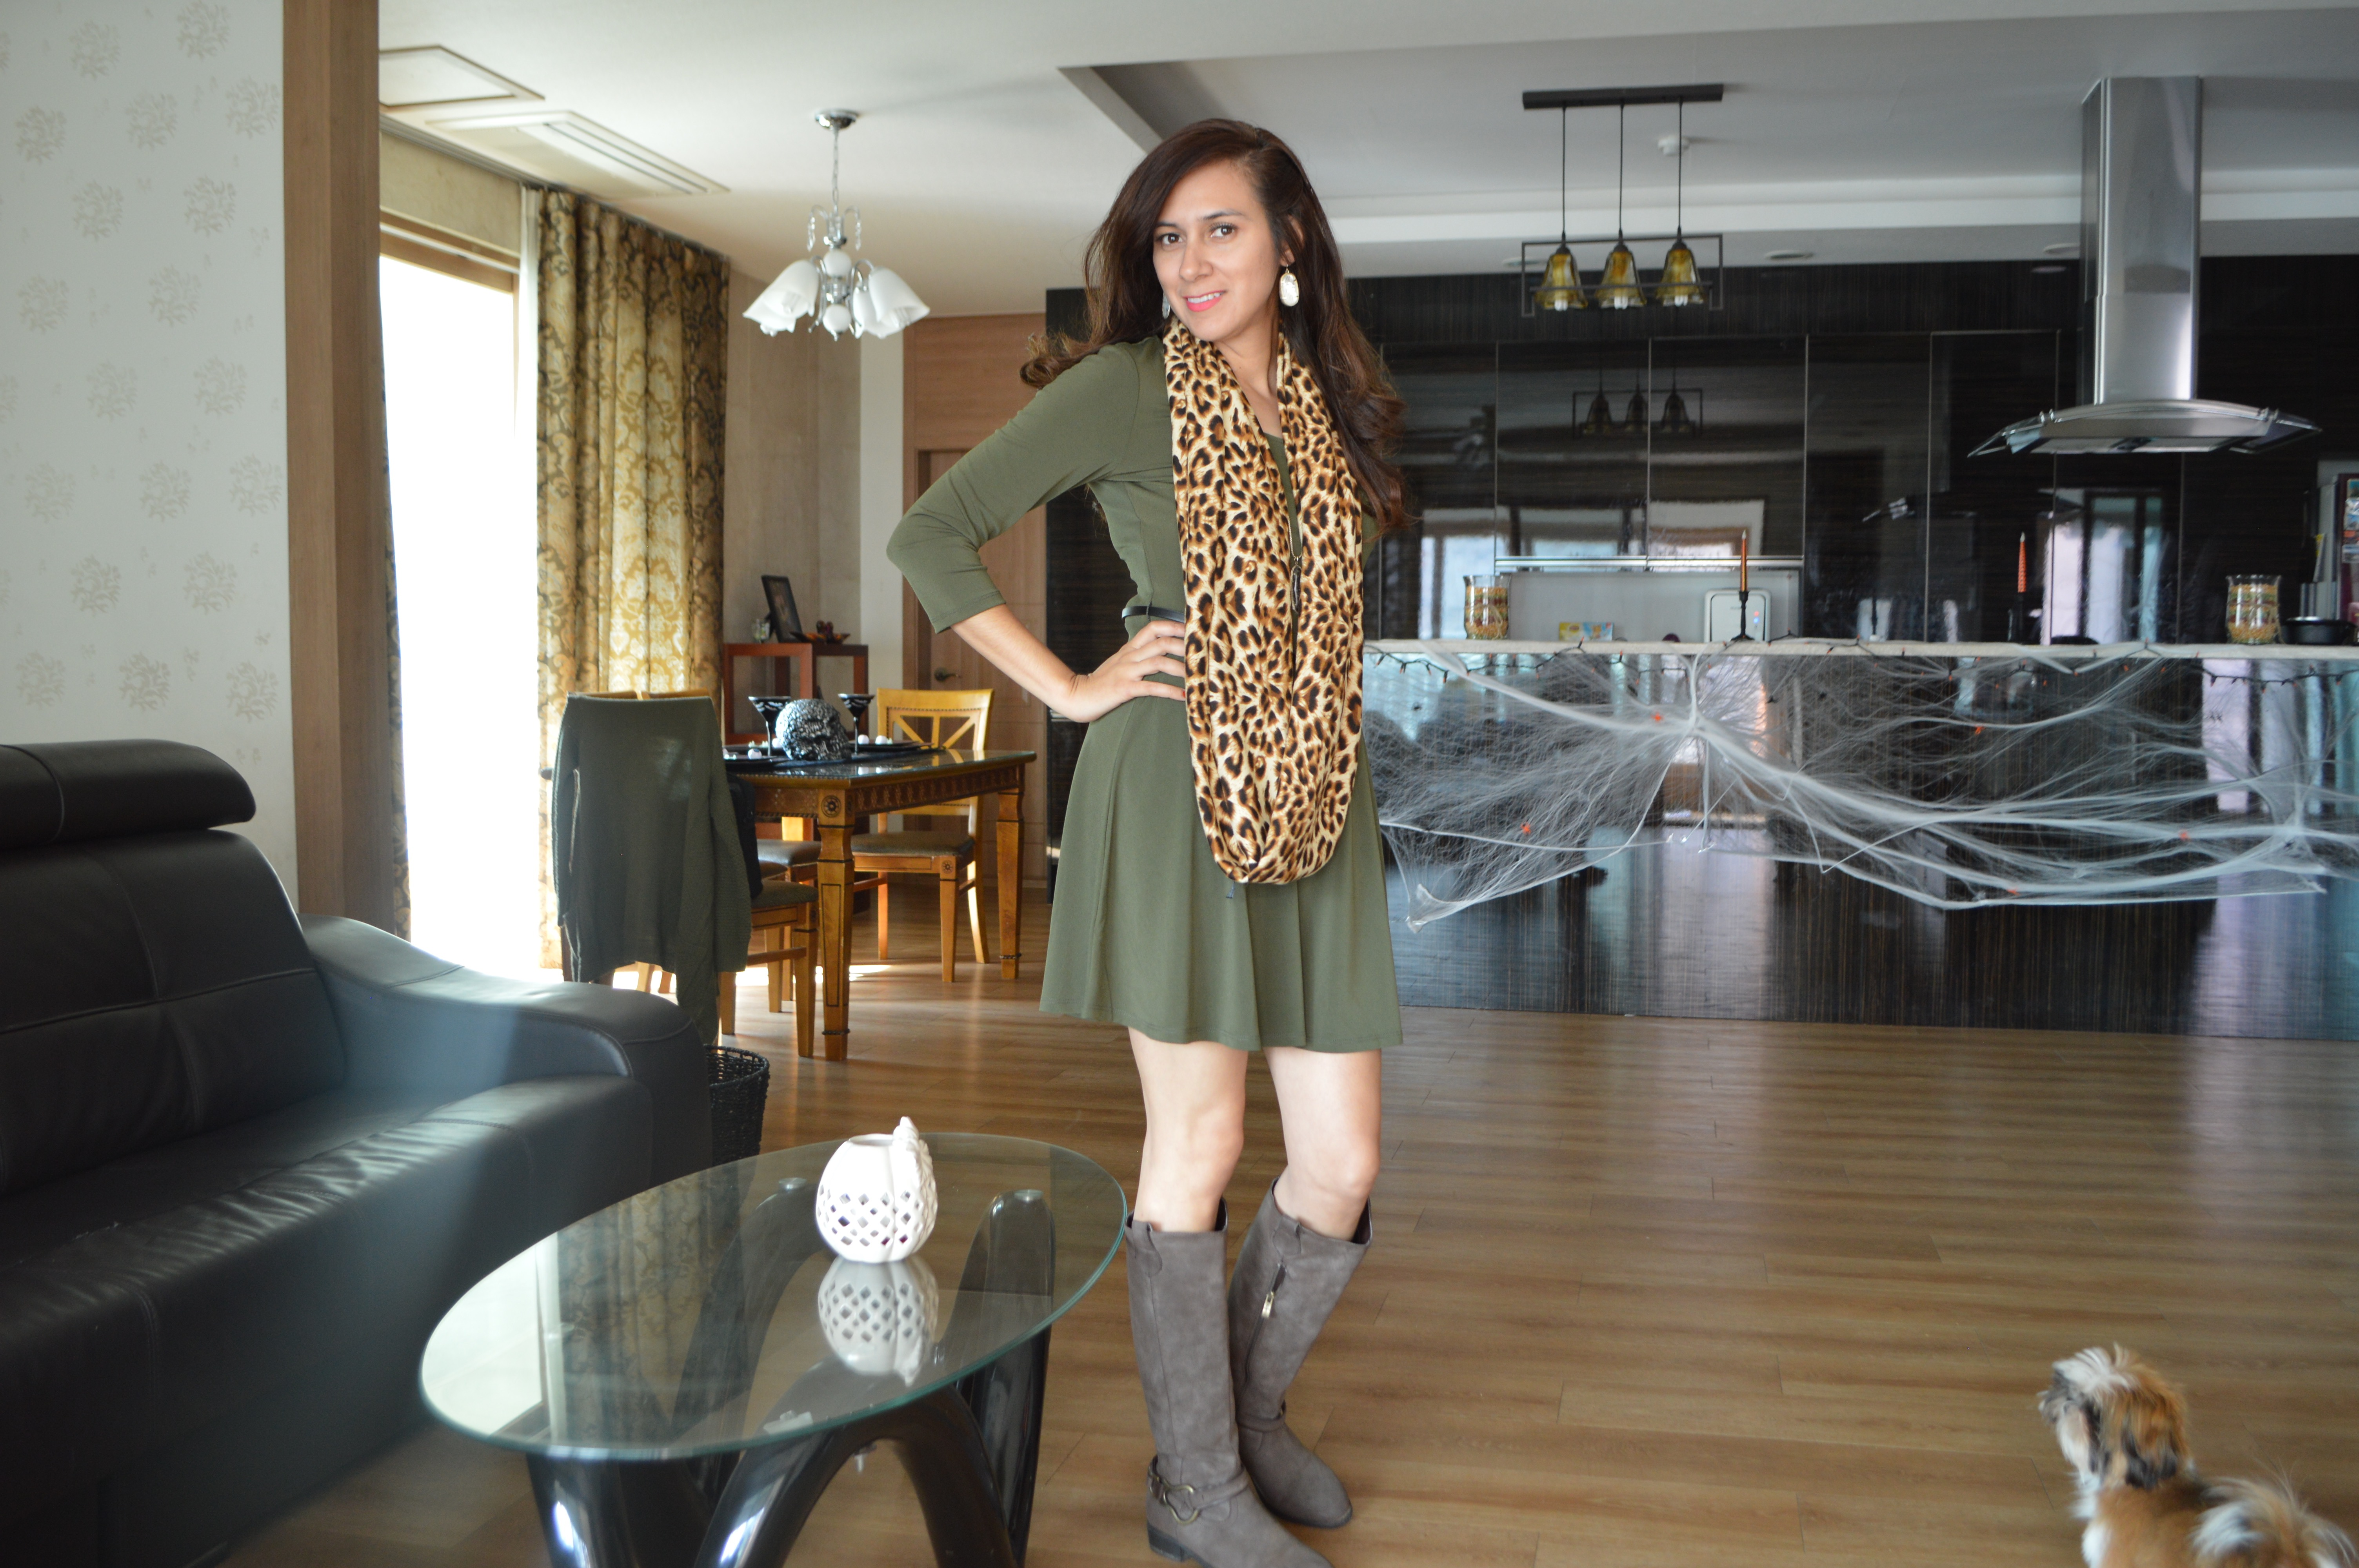 fall fashion, who to style overseas, how to shop, fall fashion, foreign country, ridding boots, fall trends, girl style, fashion, fall fashion